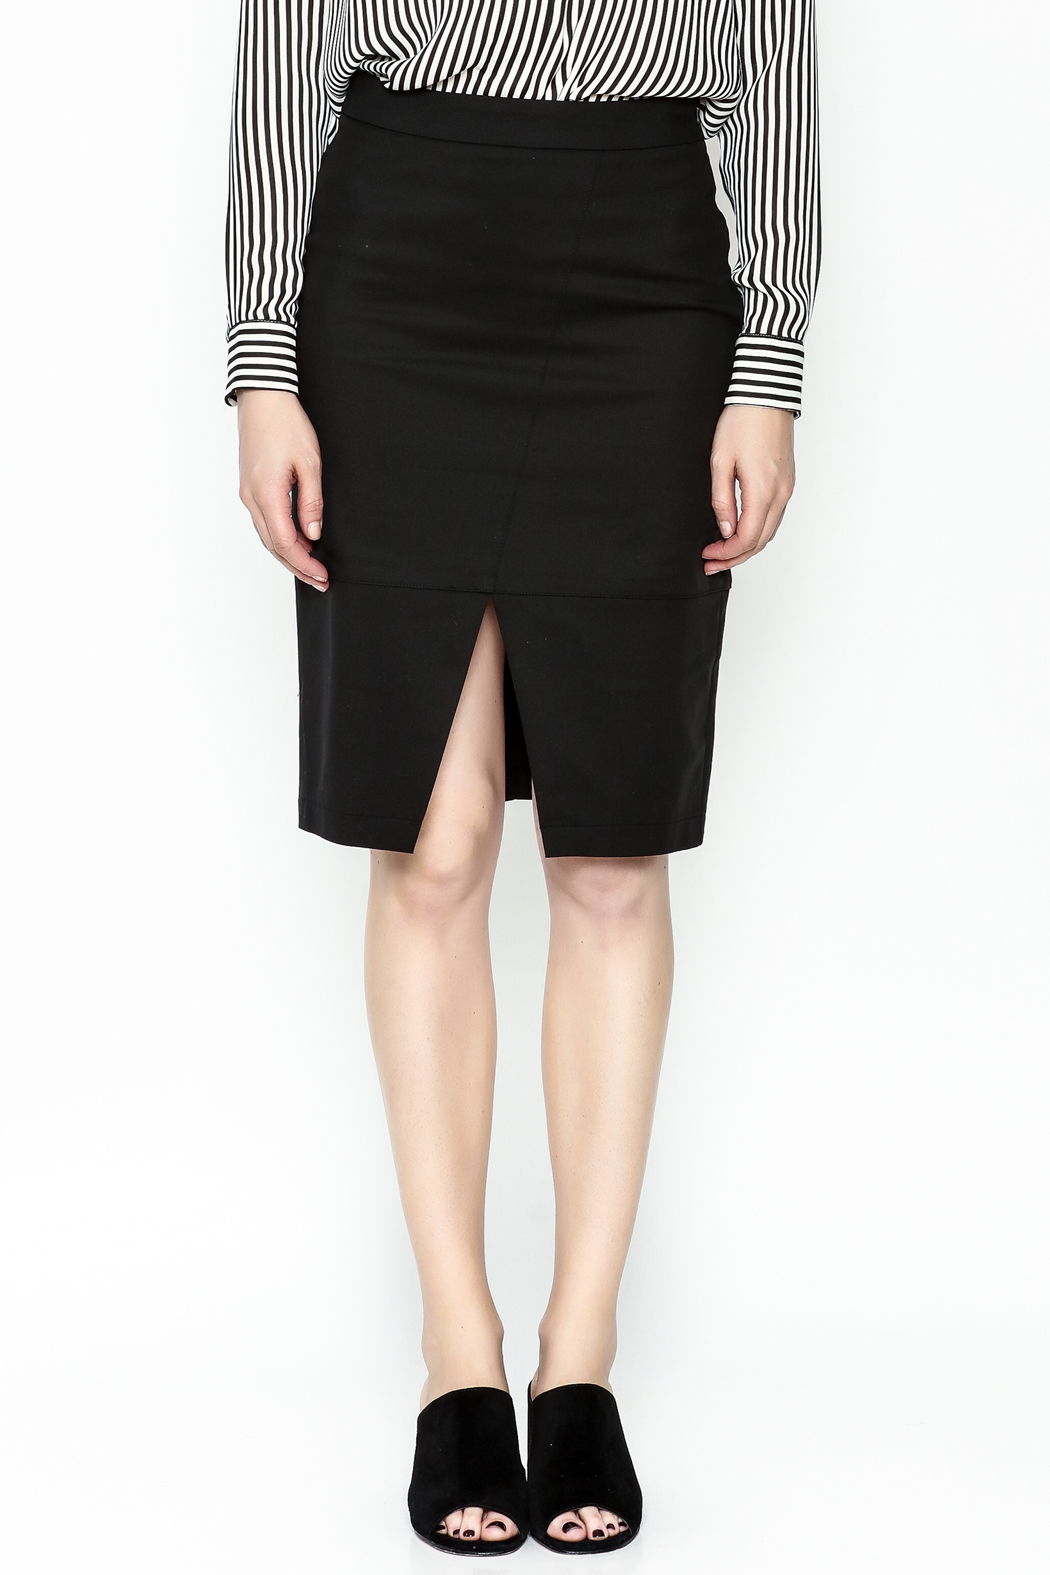 Alythea Black Pencil Skirt - Front Full Image